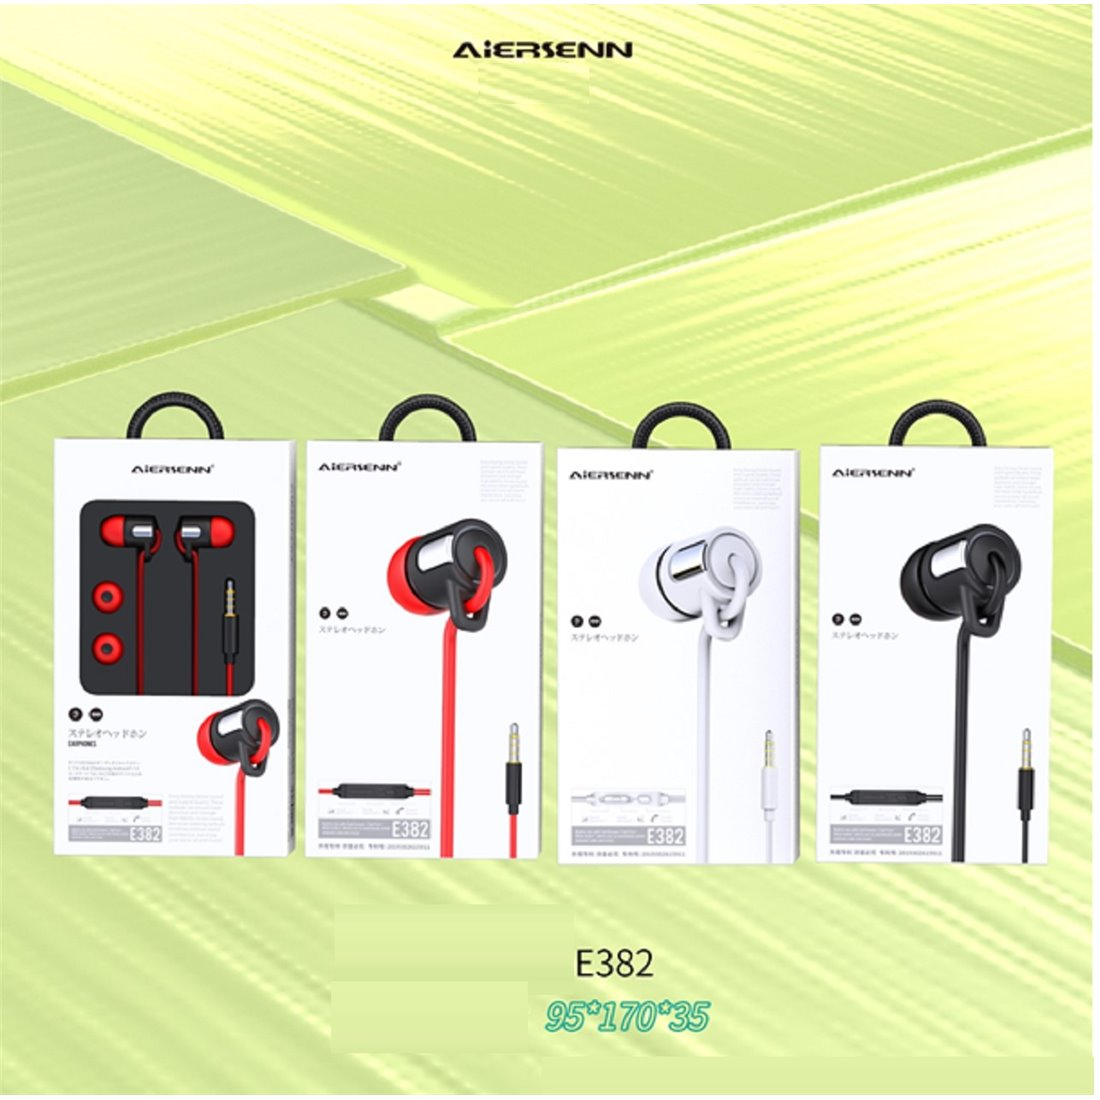 Aiersenn E382  Earphones Music and calls Black